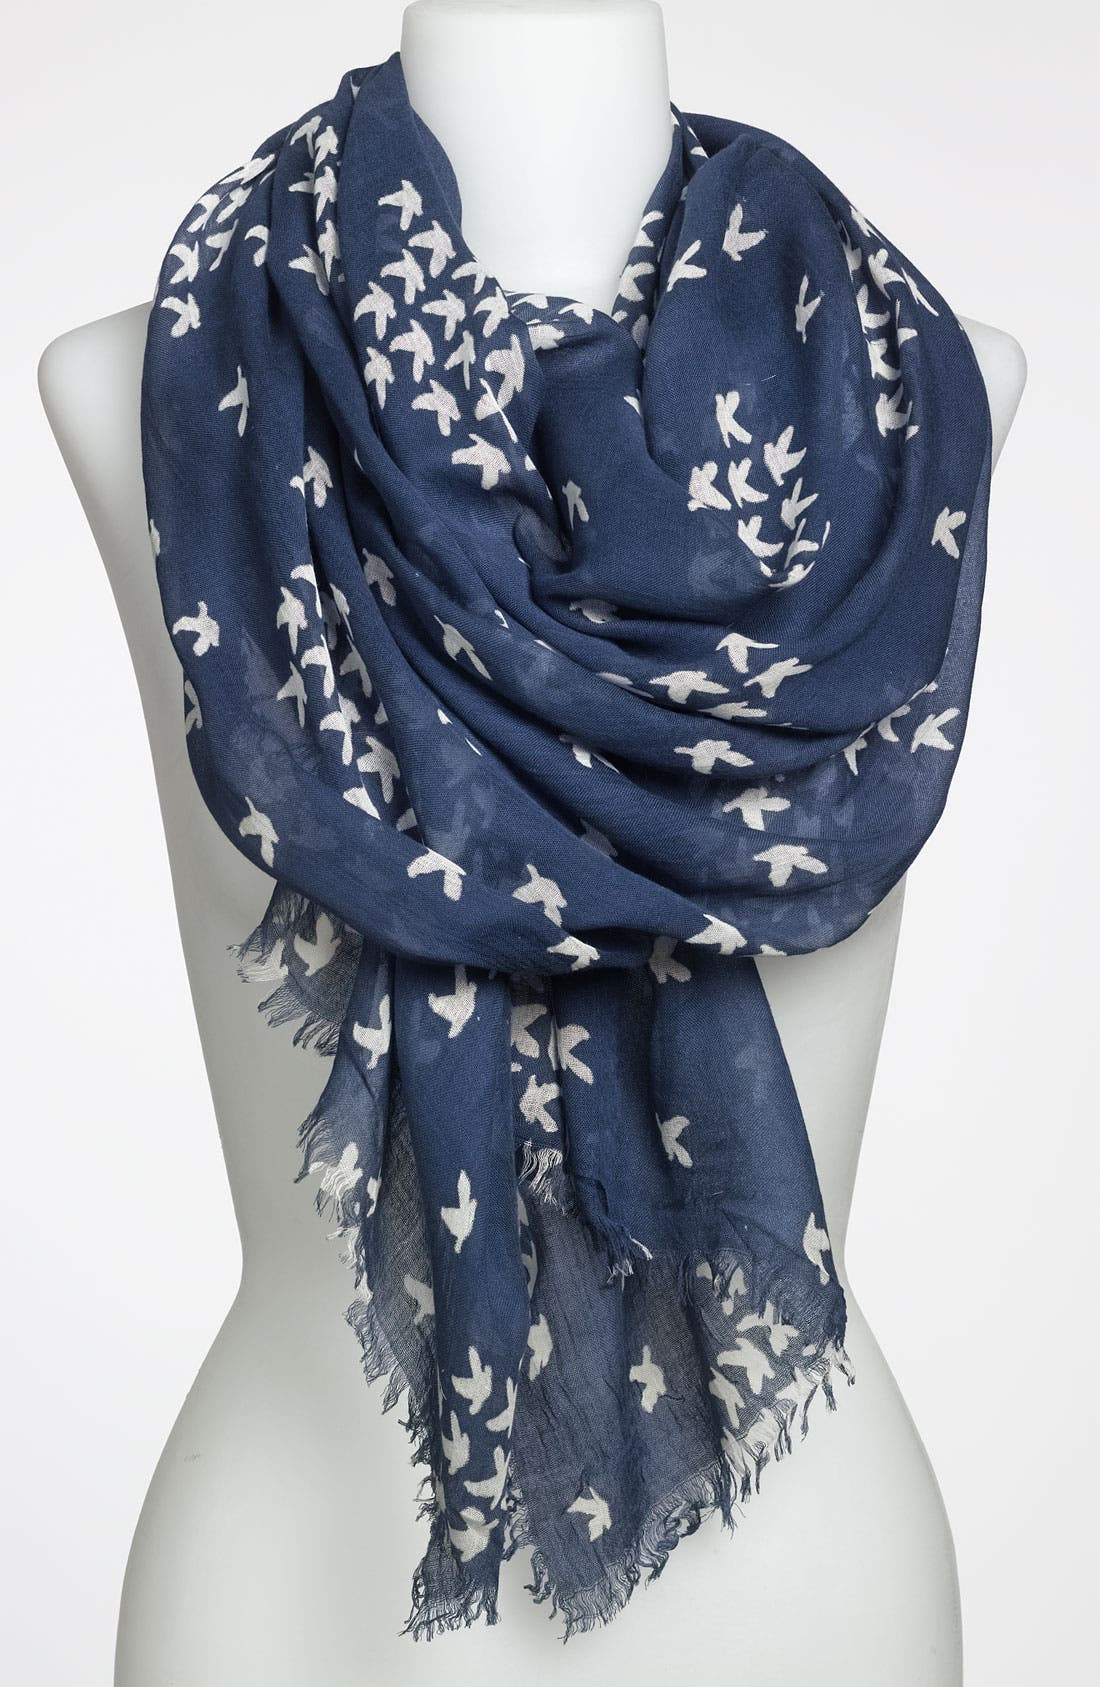 Alternate Image 1 Selected - Steve Madden 'School of Birds' Scarf